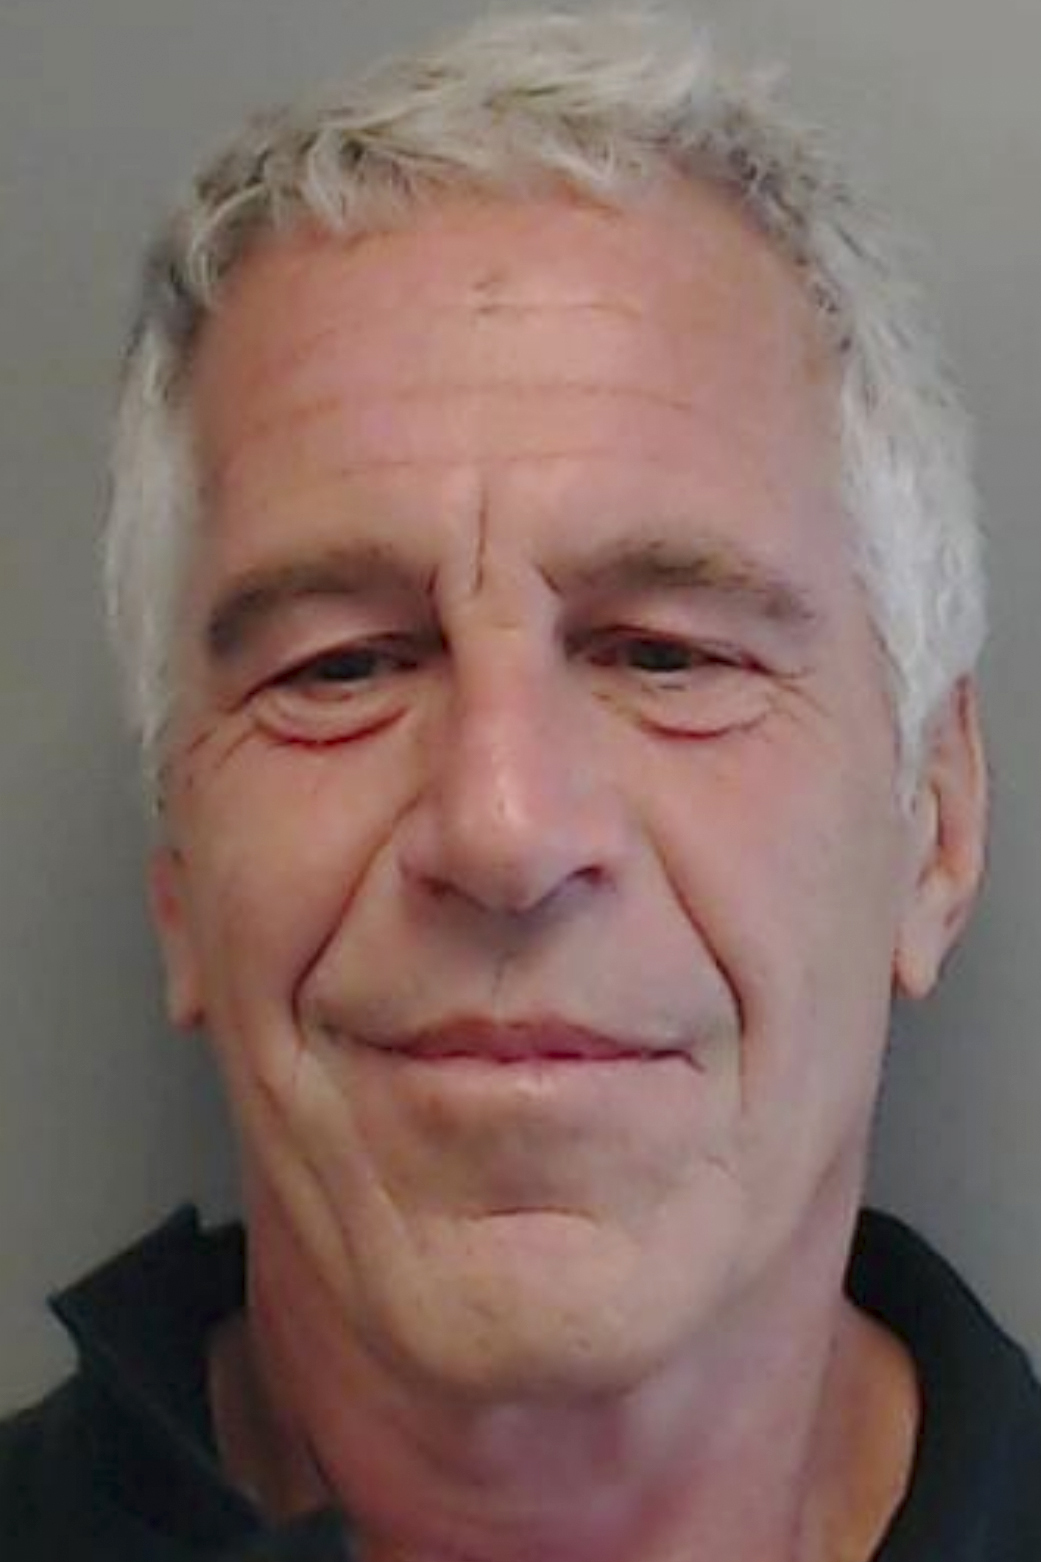 Jeffrey Epstein arranged for sex with 18-year-old while on work release from jail: lawsuit